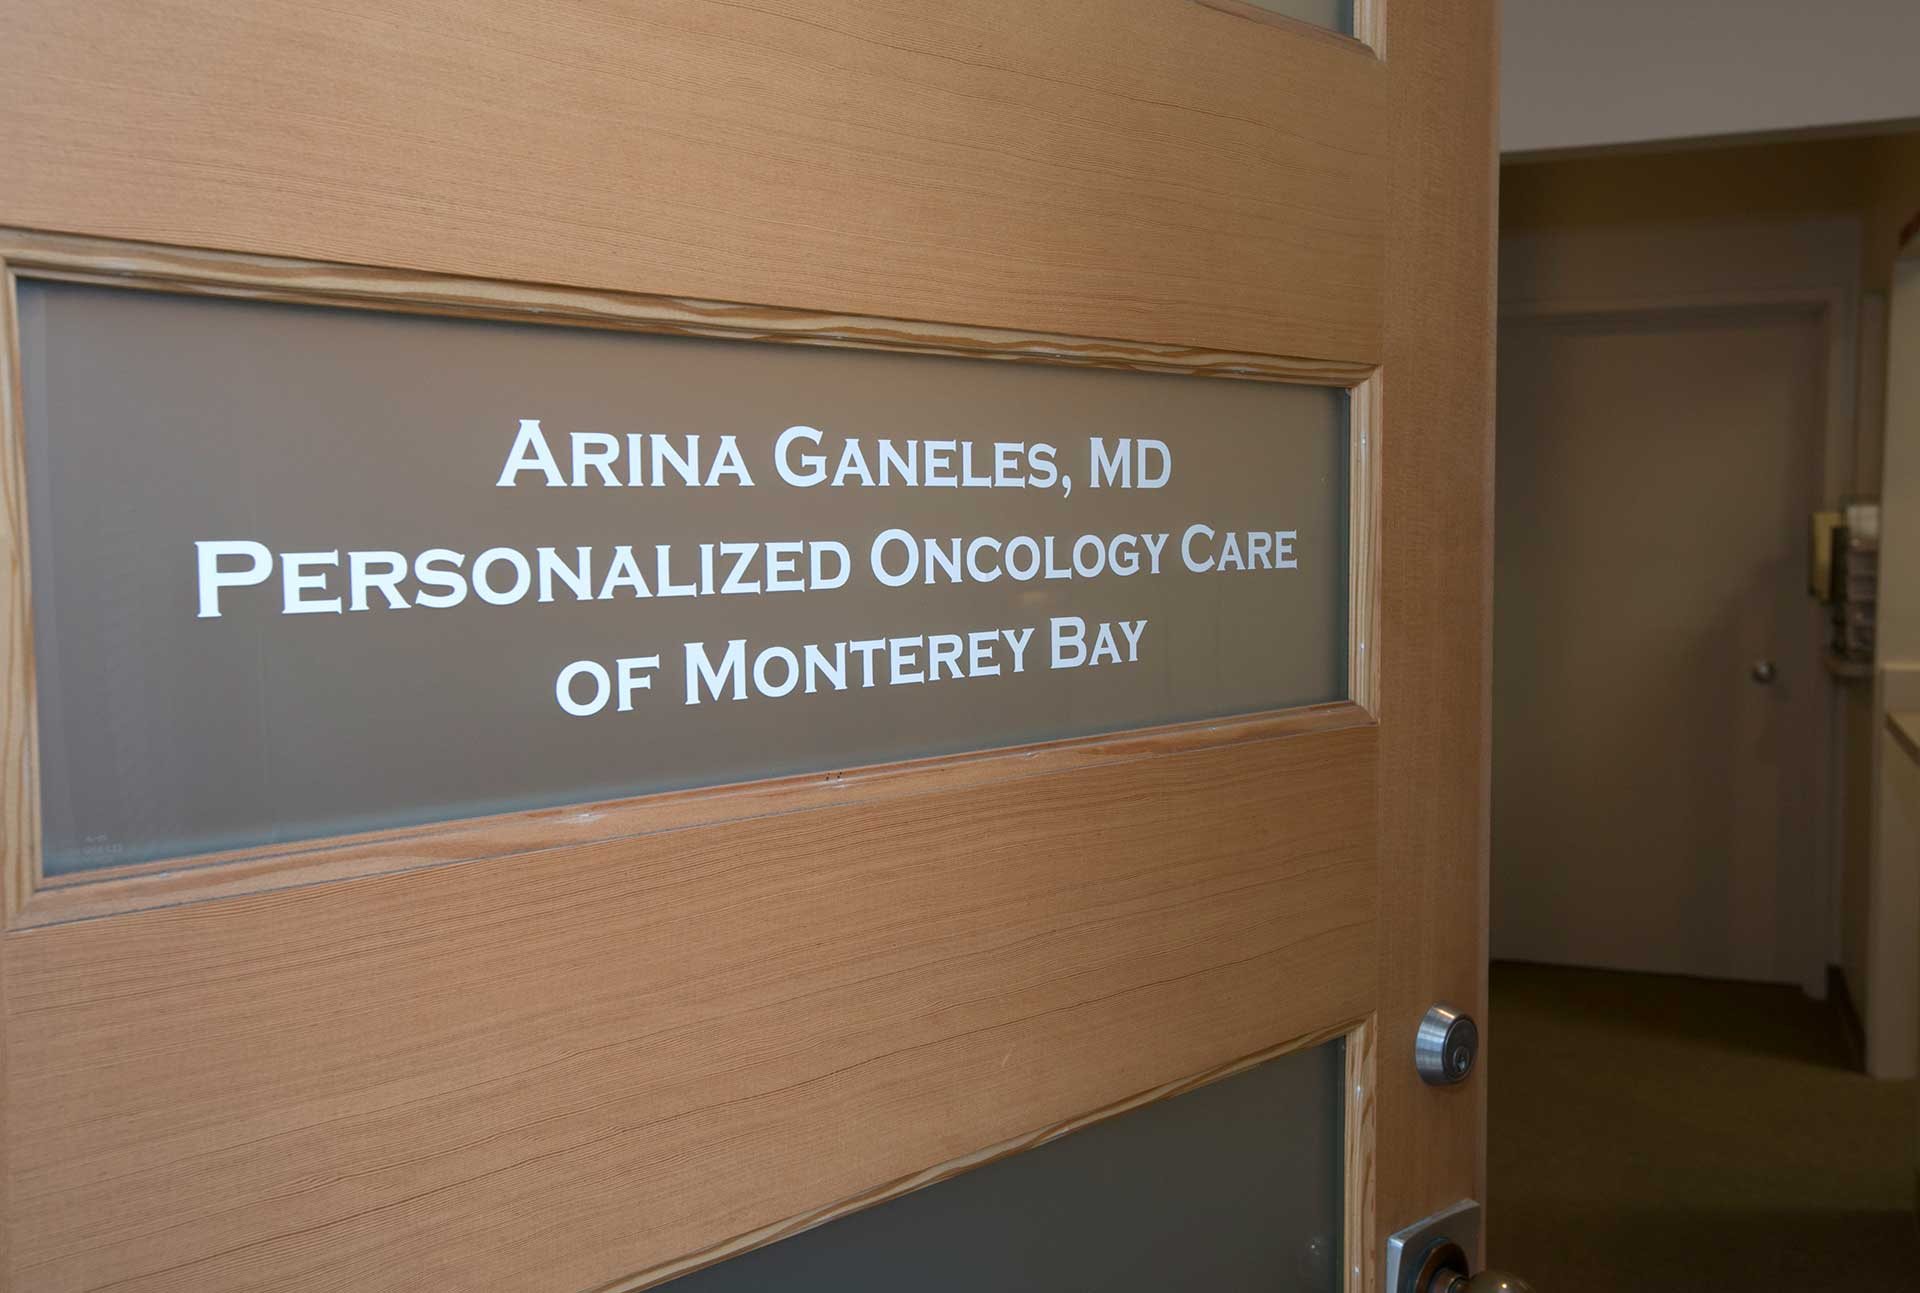 Personalized Oncology Care of Monterey Bay